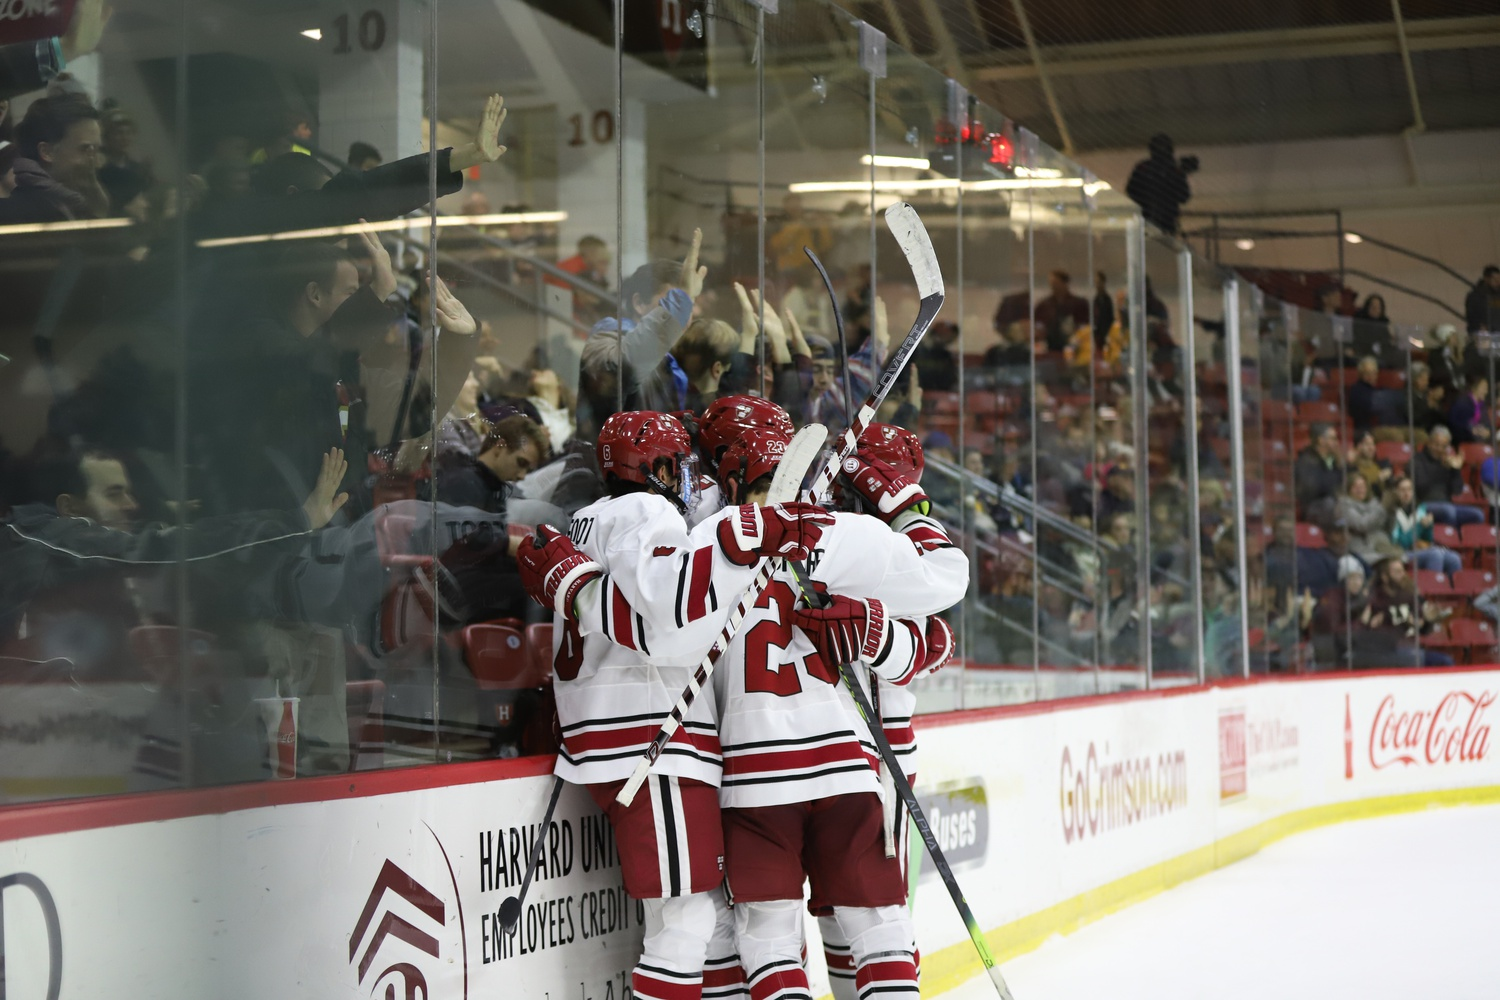 Harvard's sixth straight win makes it the ECAC leader, and one of two unbeaten teams in the country.